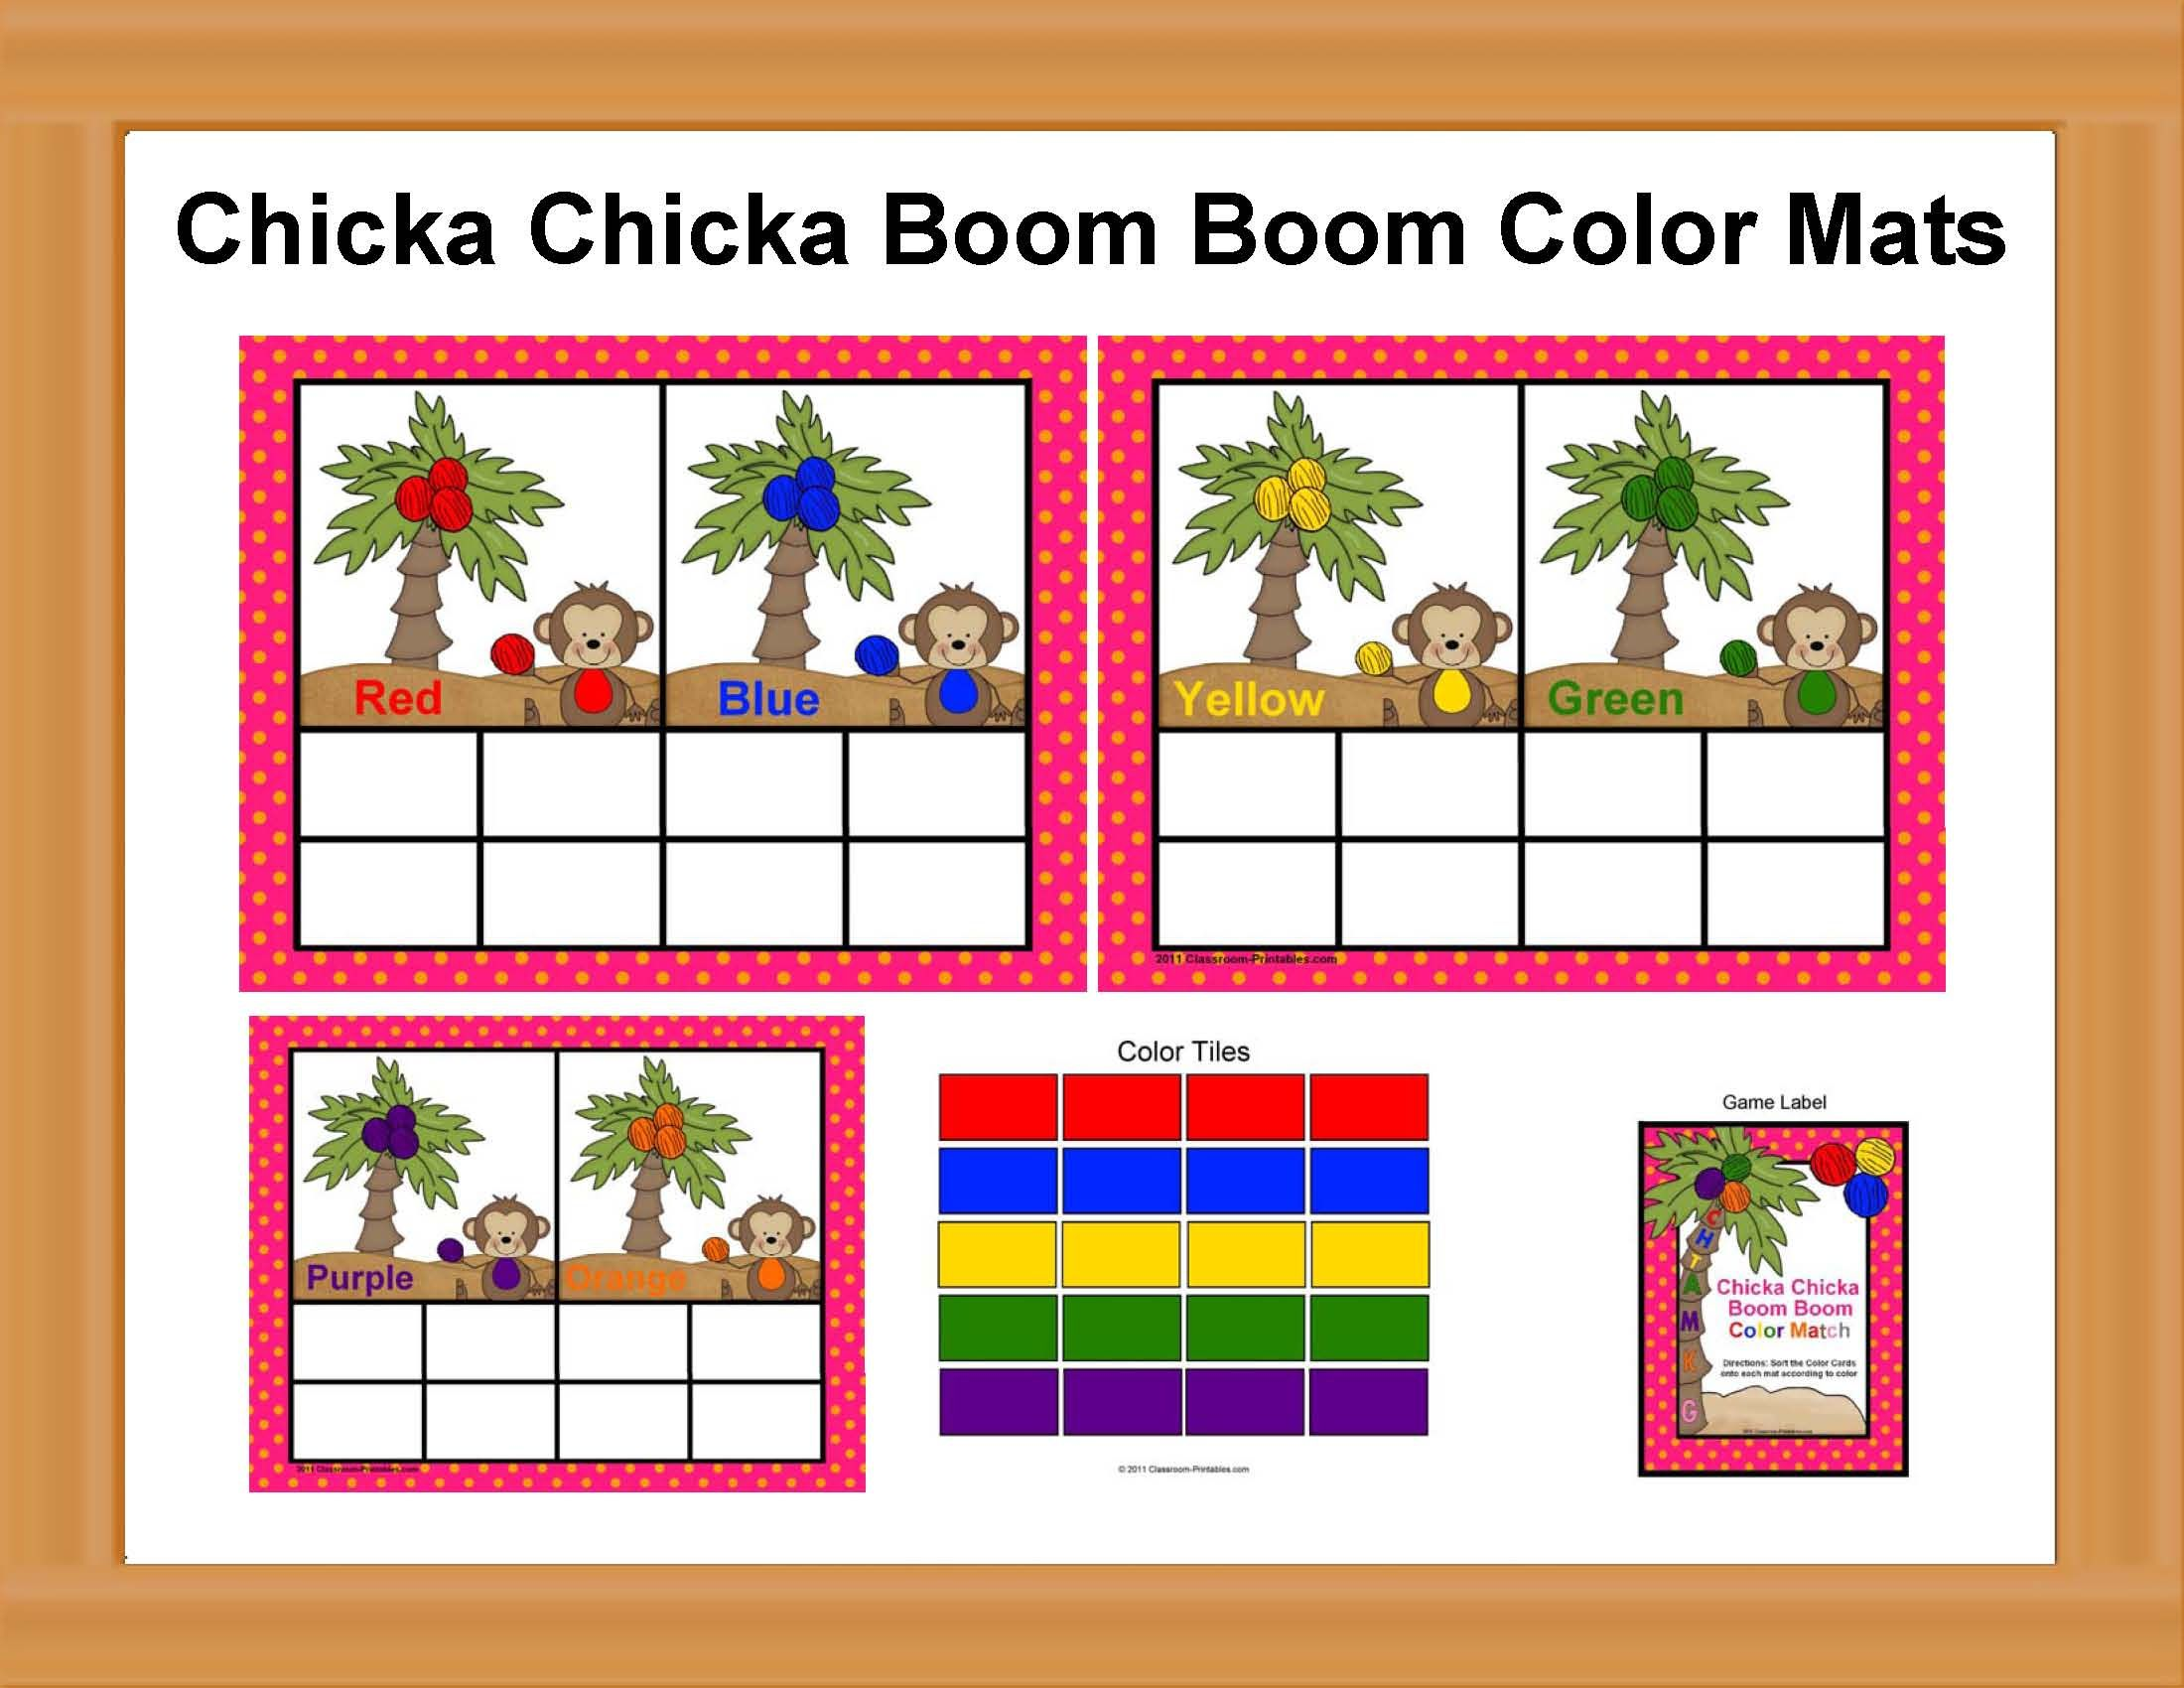 Chicka Chicka Boom Boom Color Match